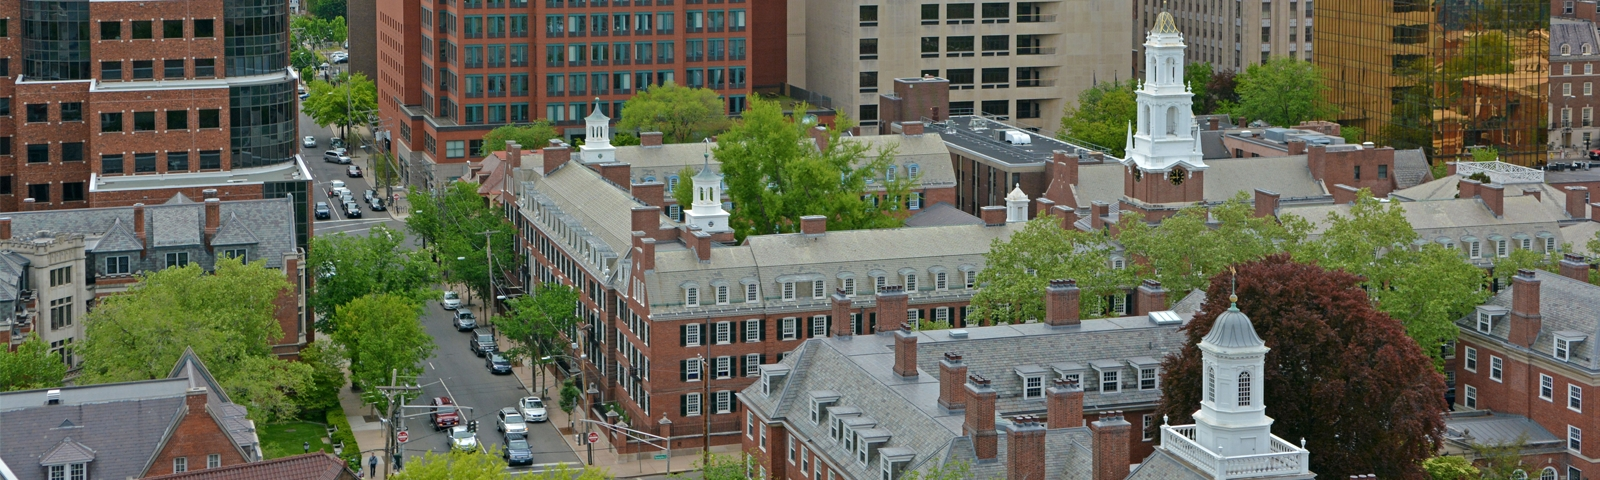 A stock photo of New Haven, including Dow Hall and the adjacent Timothy Dwight College.